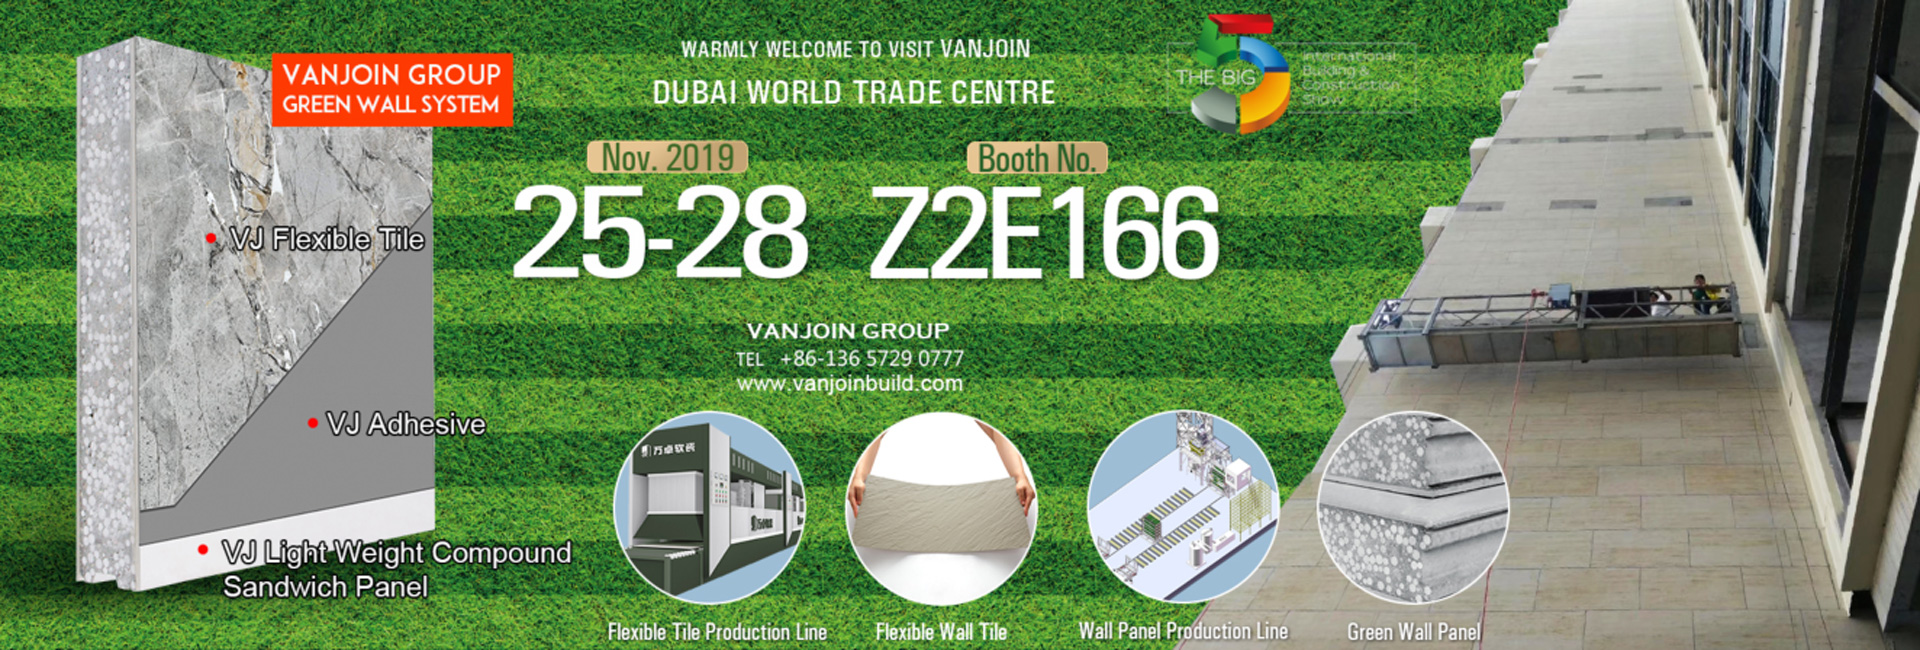 Dubai World Trade Expo